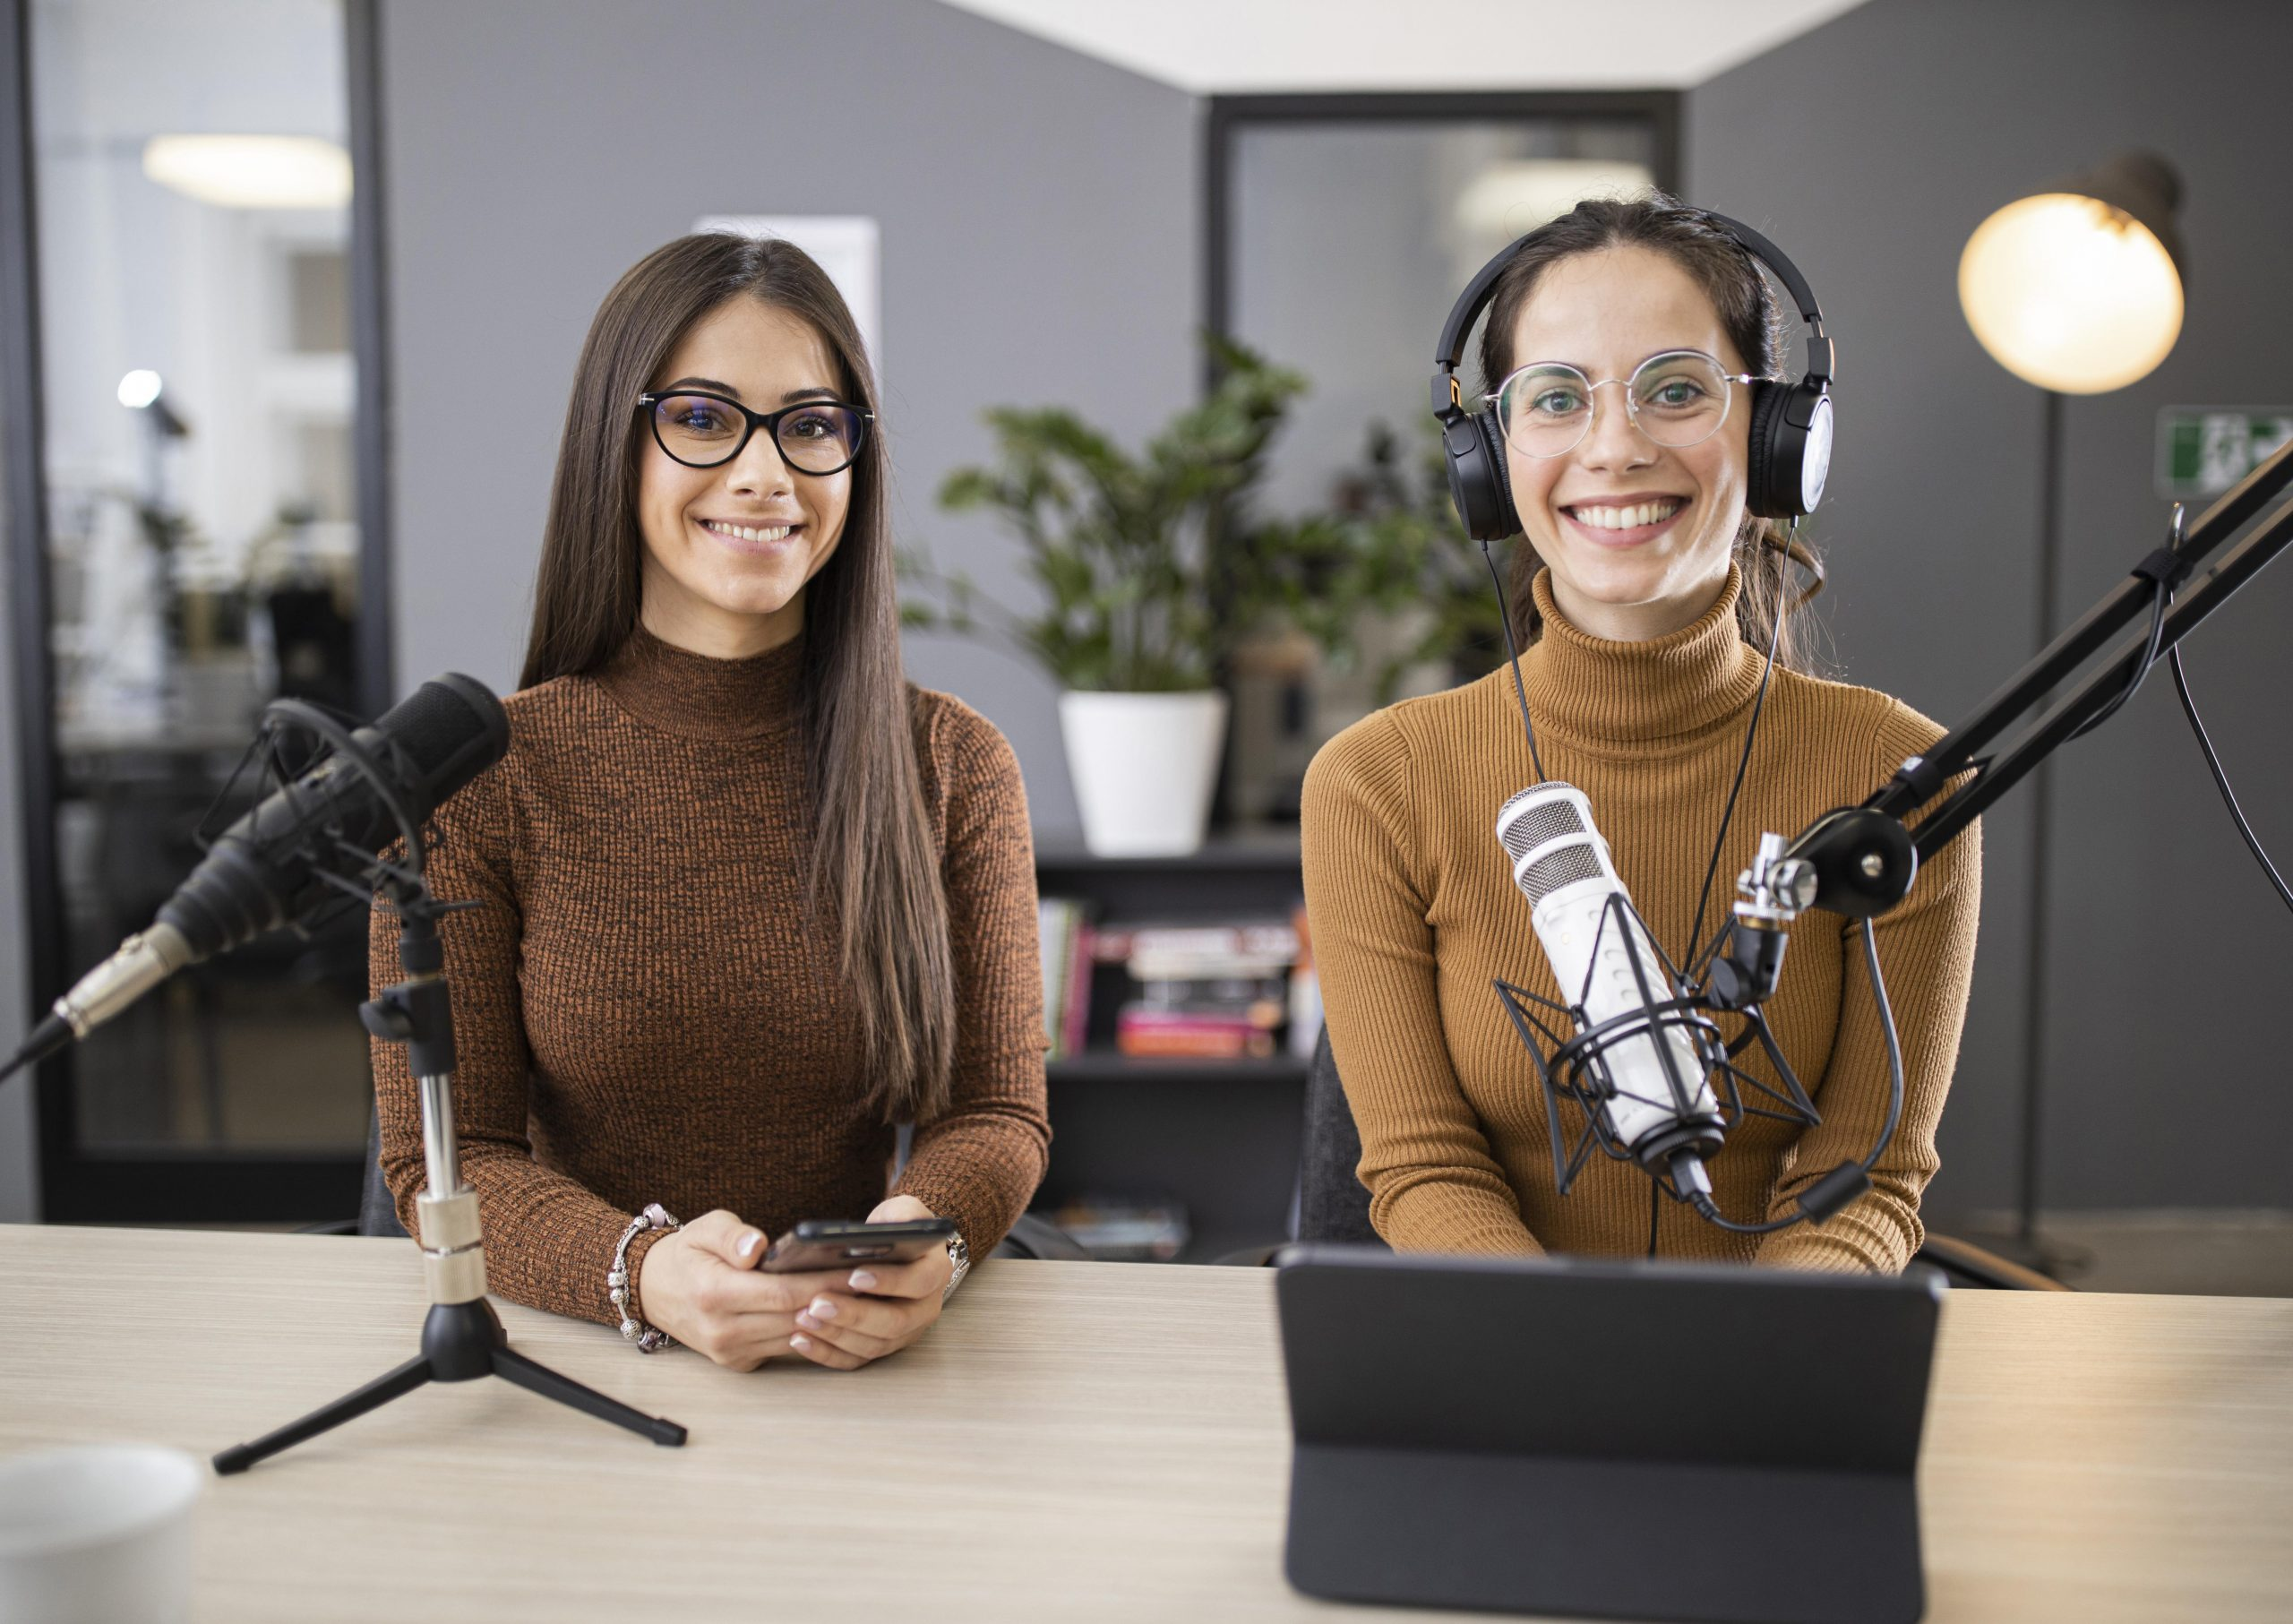 Small business podcast tips.